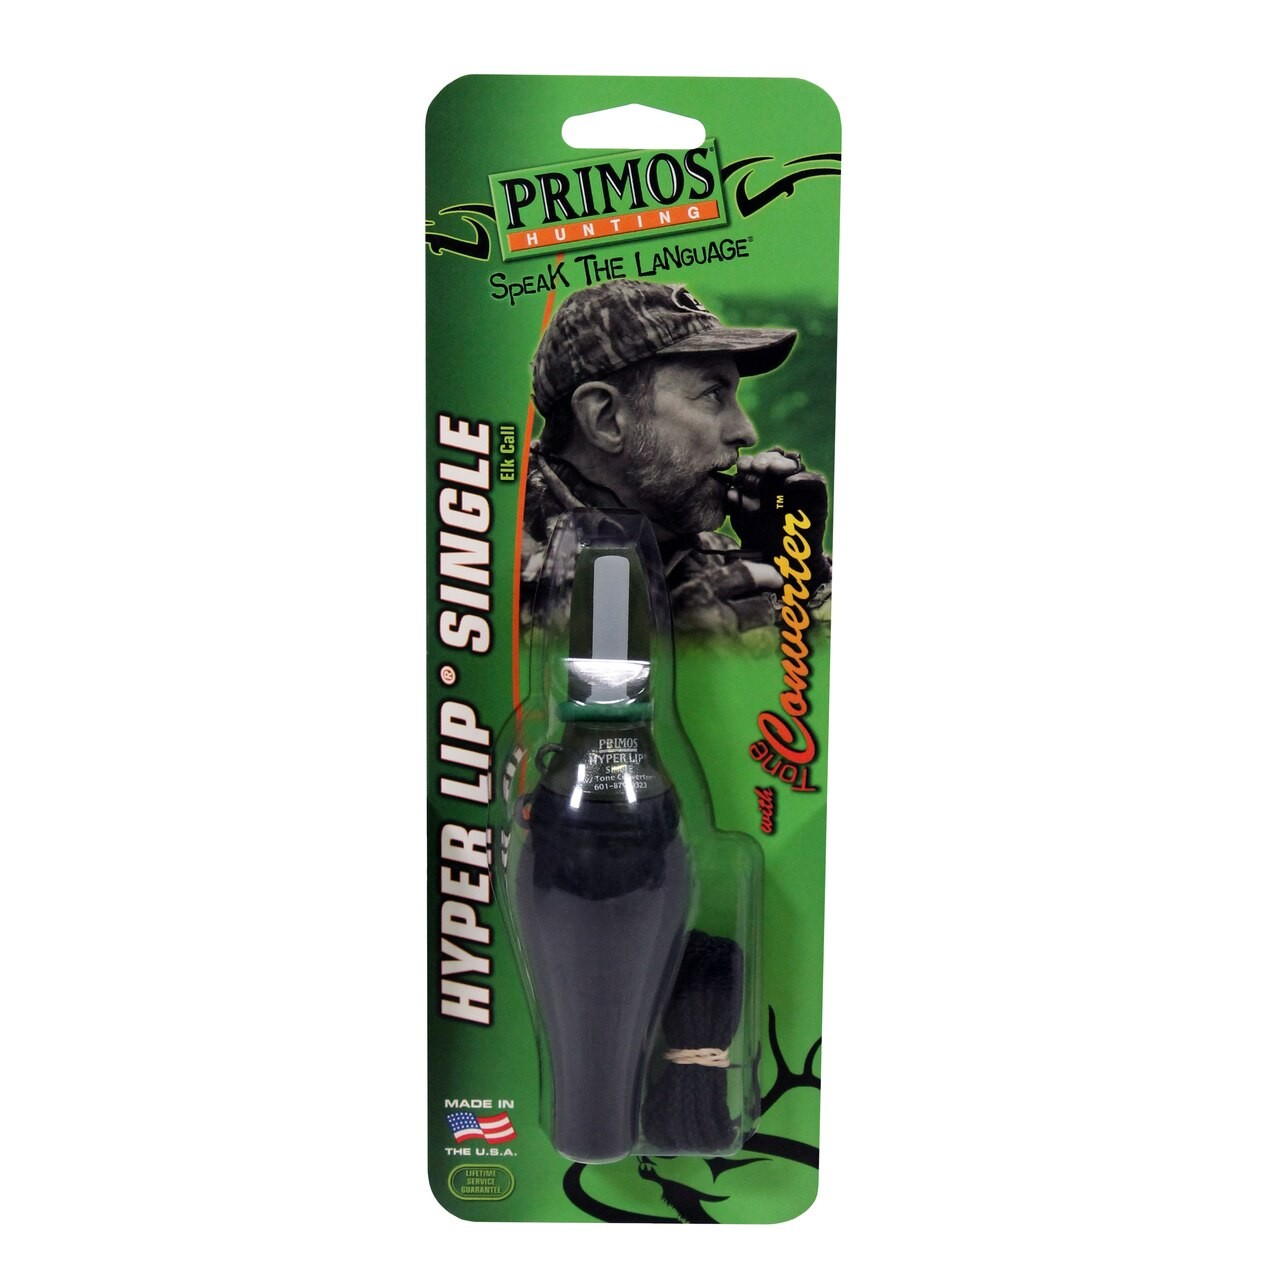 Primos Game Calls Hyper LIP Single with TONE ADAPT